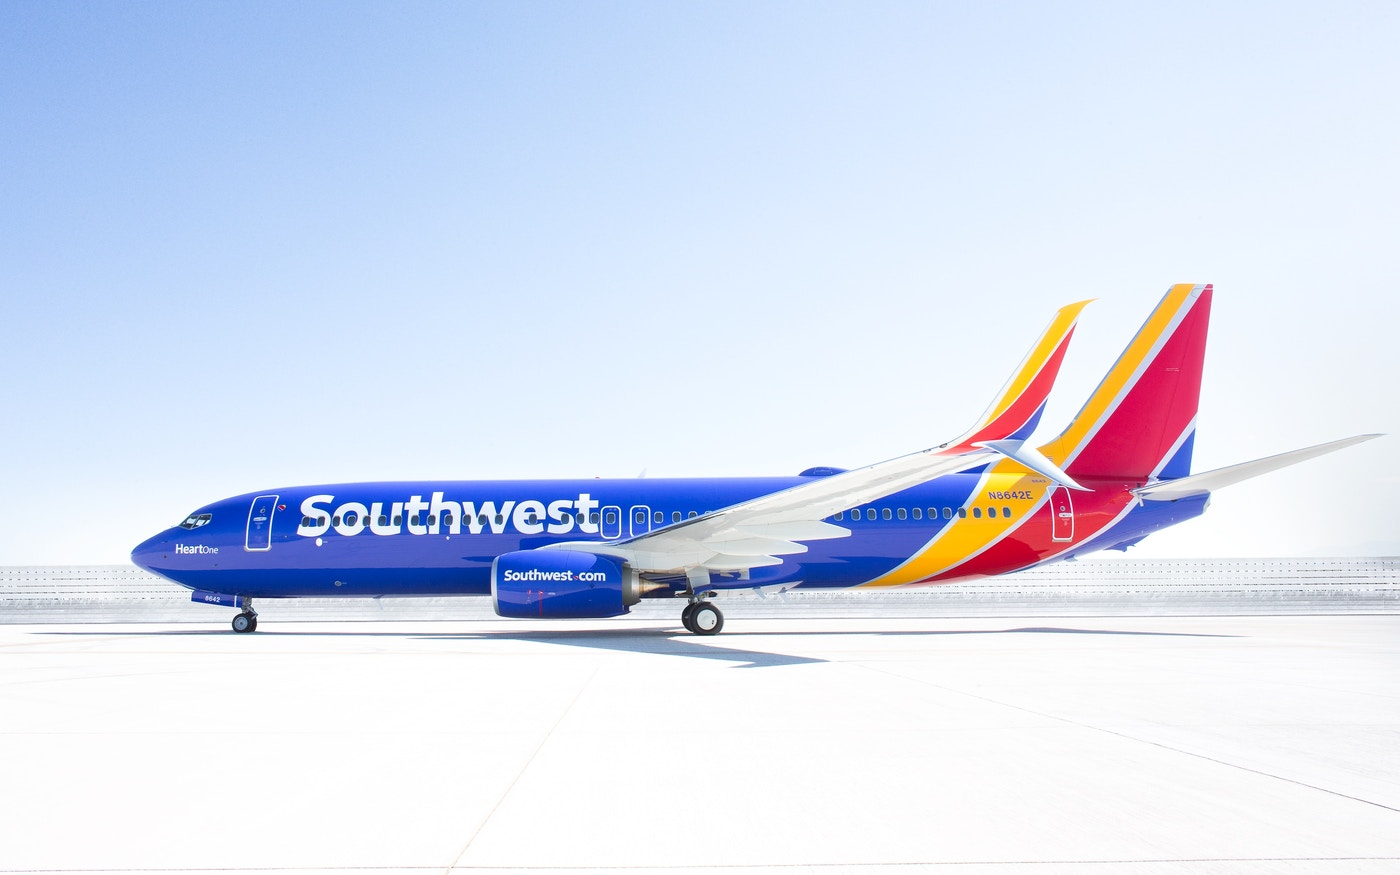 Southwest Airlines (西南航空)